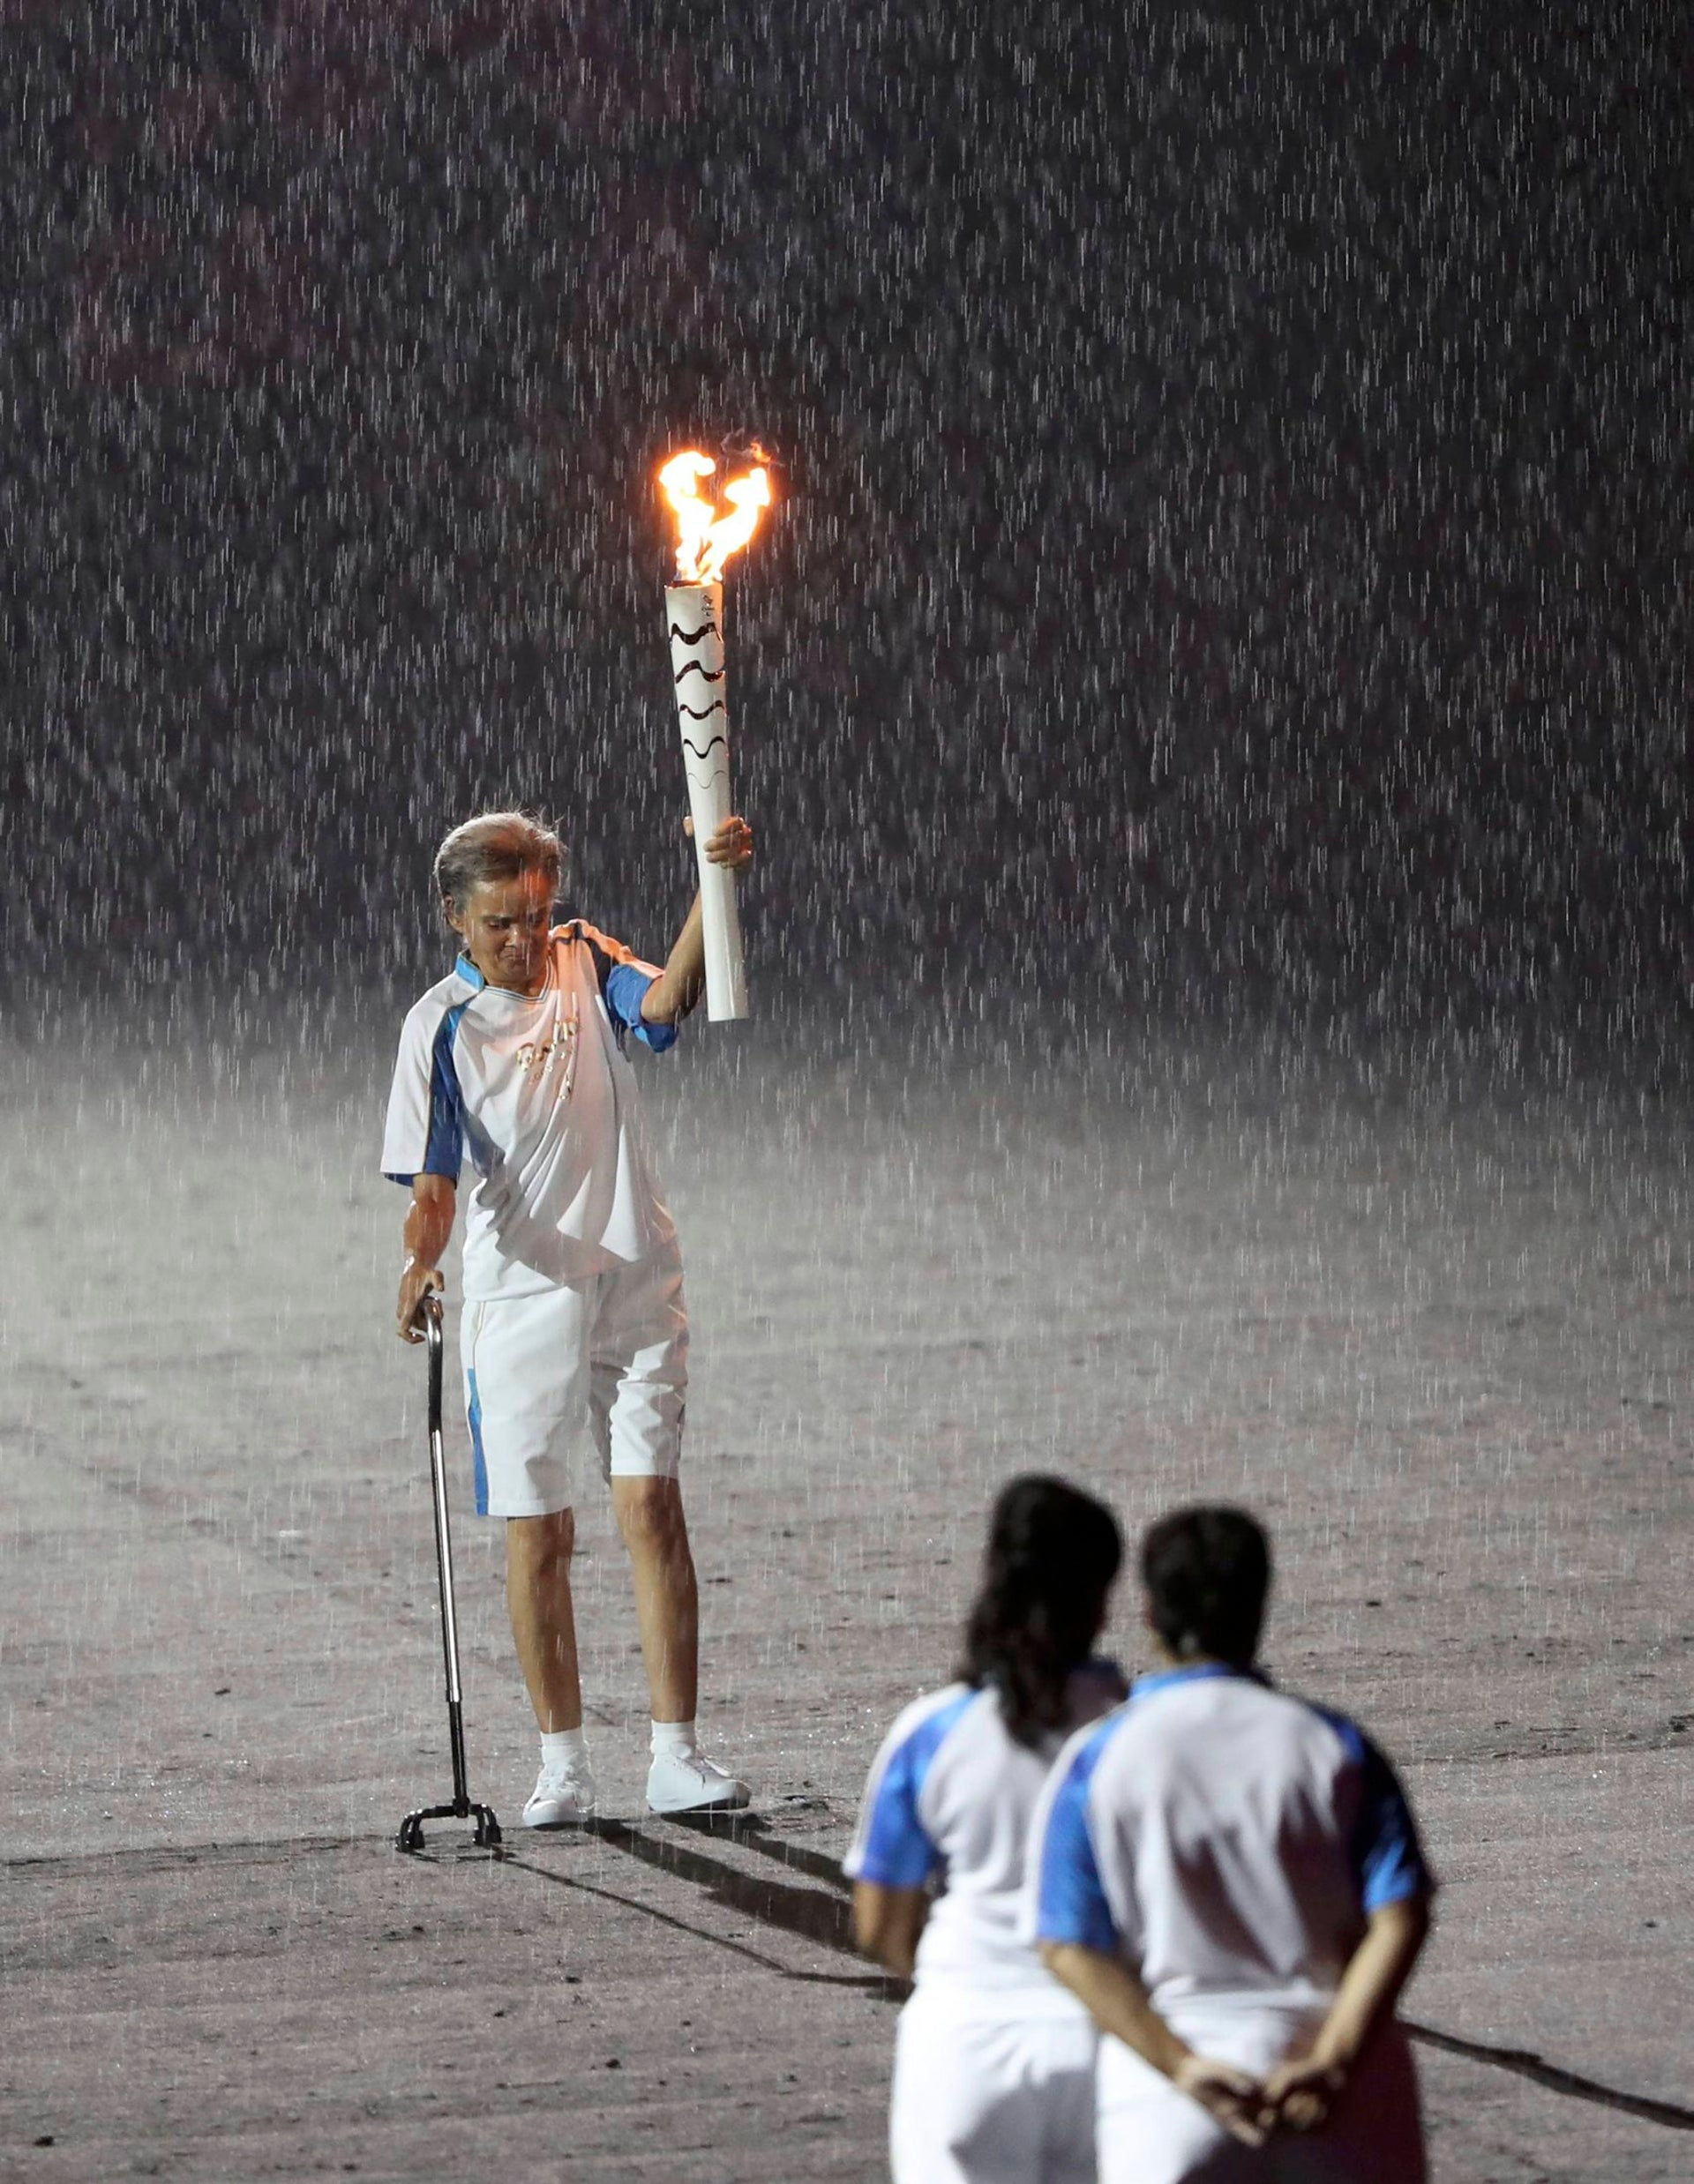 2016 Rio Paralympics - Opening ceremony - Maracana - Rio de Janeiro, Brazil - 07/09/2016. Brazilian Paralympic runner Marcia Malsar continues carrying the torch after falling as rain falls during the opening ceremony.